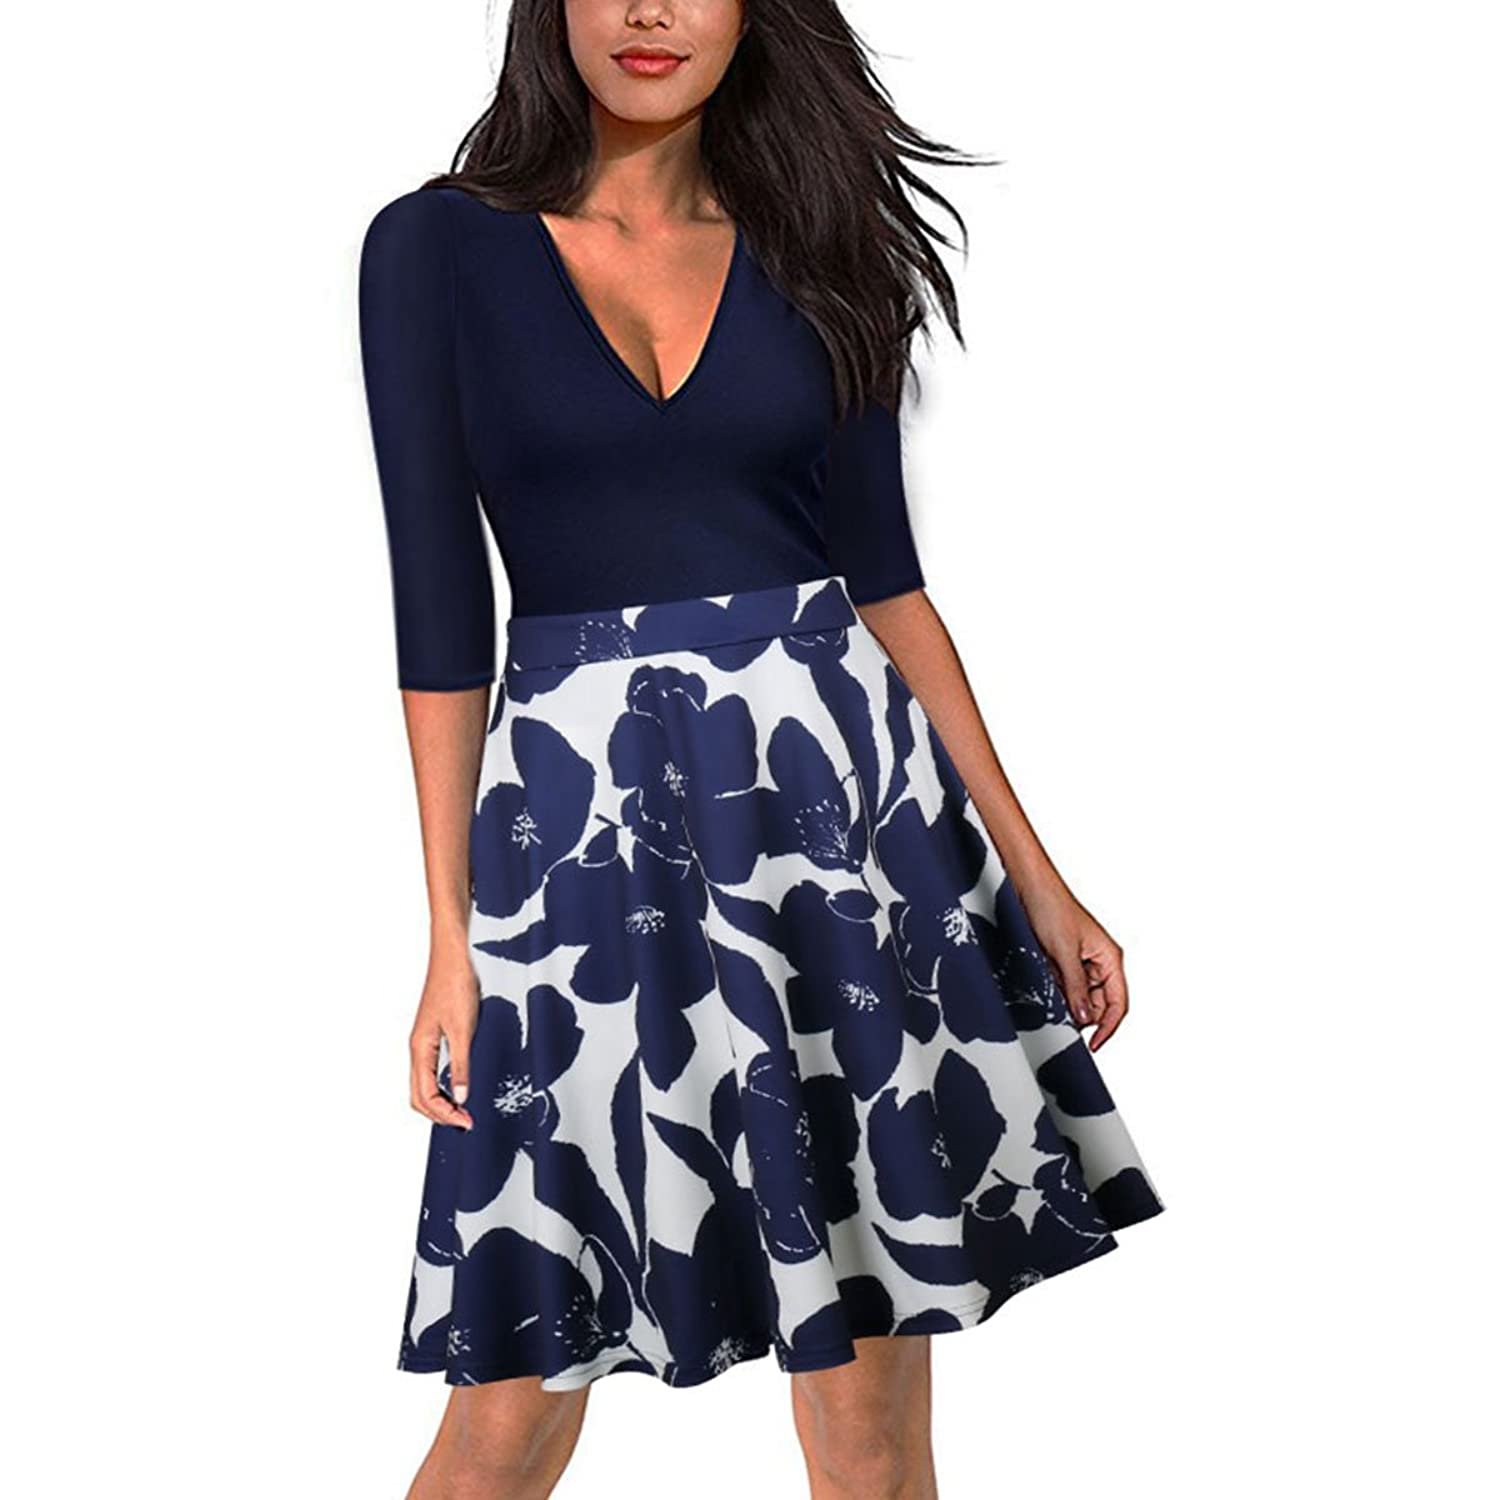 NaturalArt Womens Floral Patchwork Swing 1/2 Sleeve Casual Party Dress at Amazon Womens Clothing store: